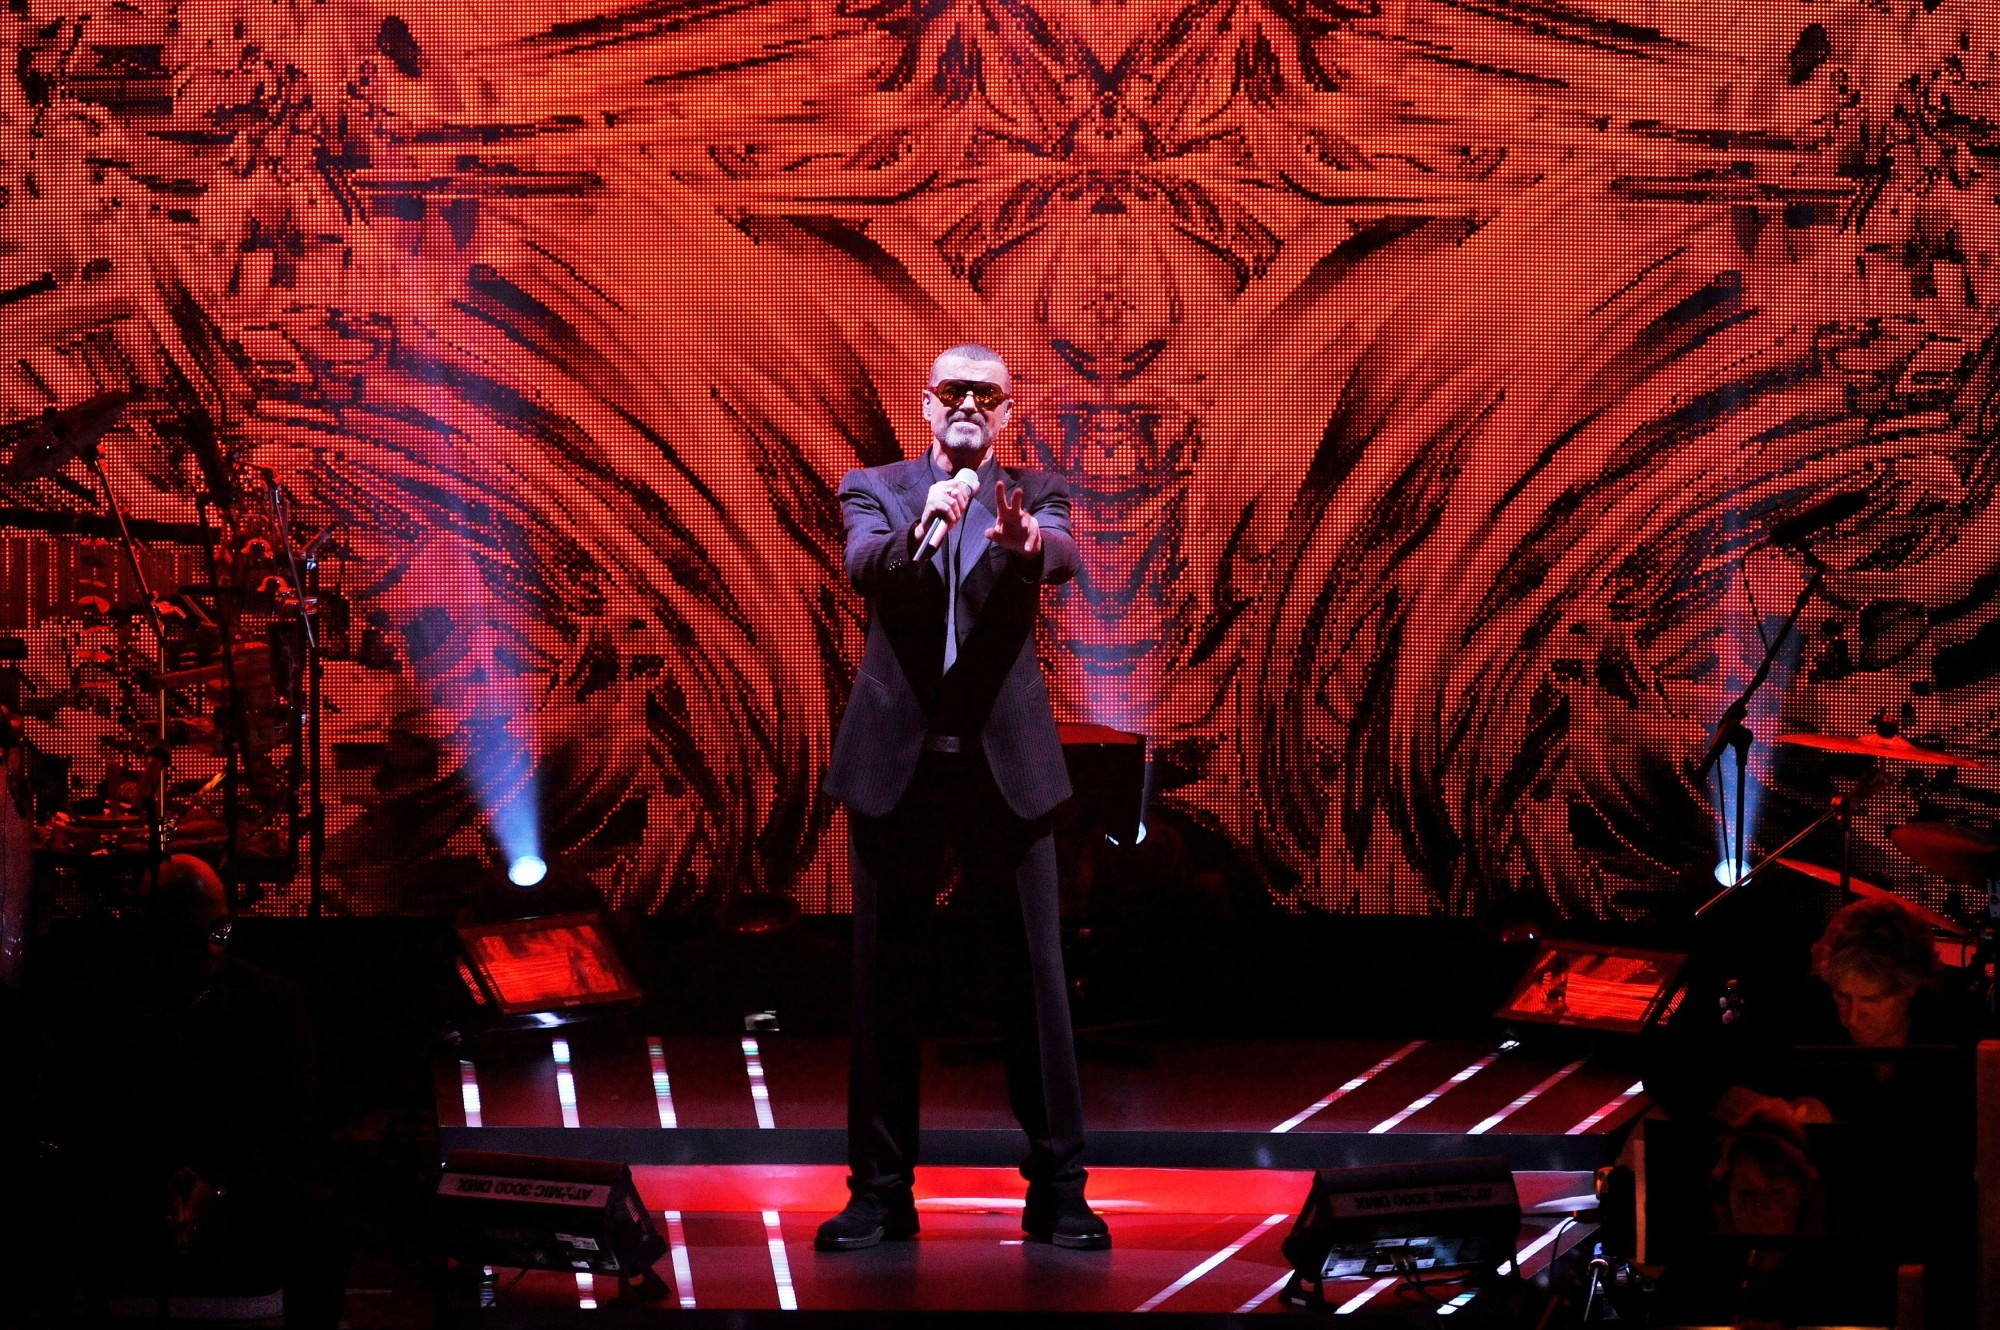 George Michael, une reprise posthume avec Nile Rodgers